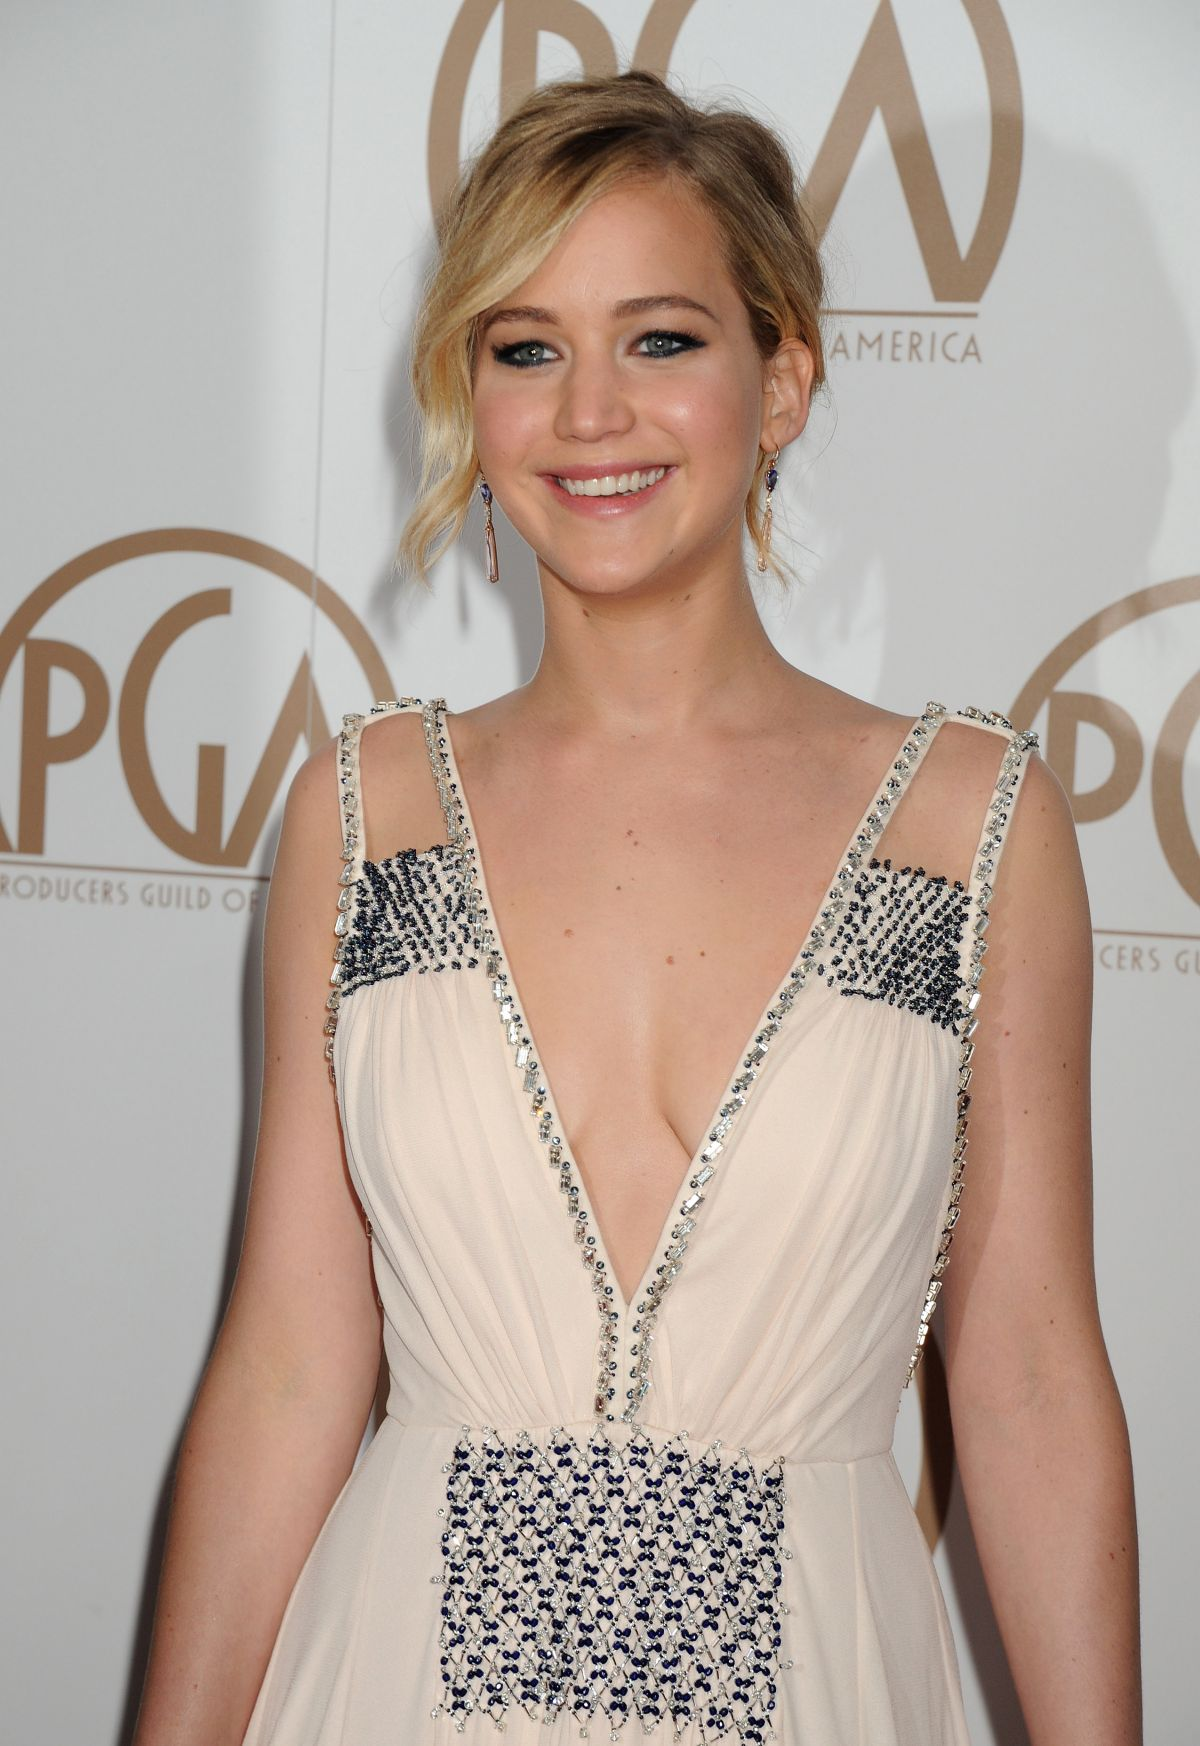 jennifer lawrence fan site